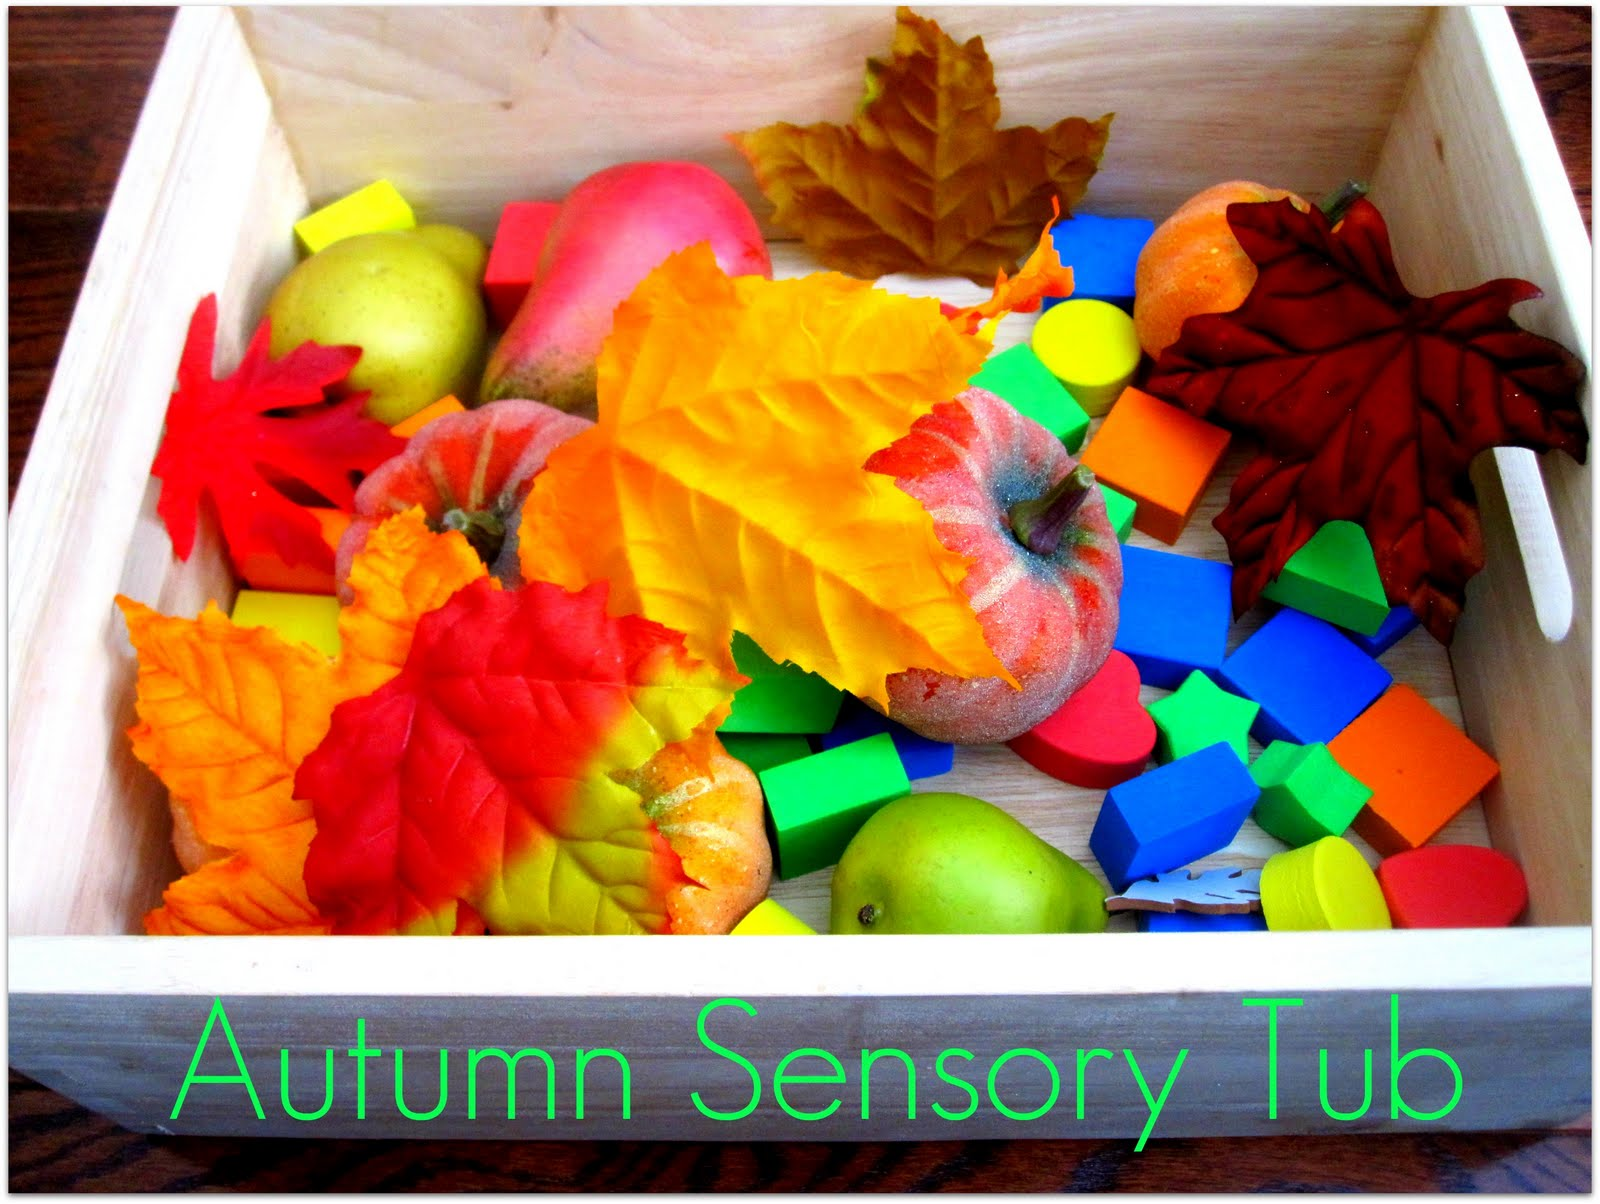 Toddler Approved Baby Playtime Autumn Sensory Tub